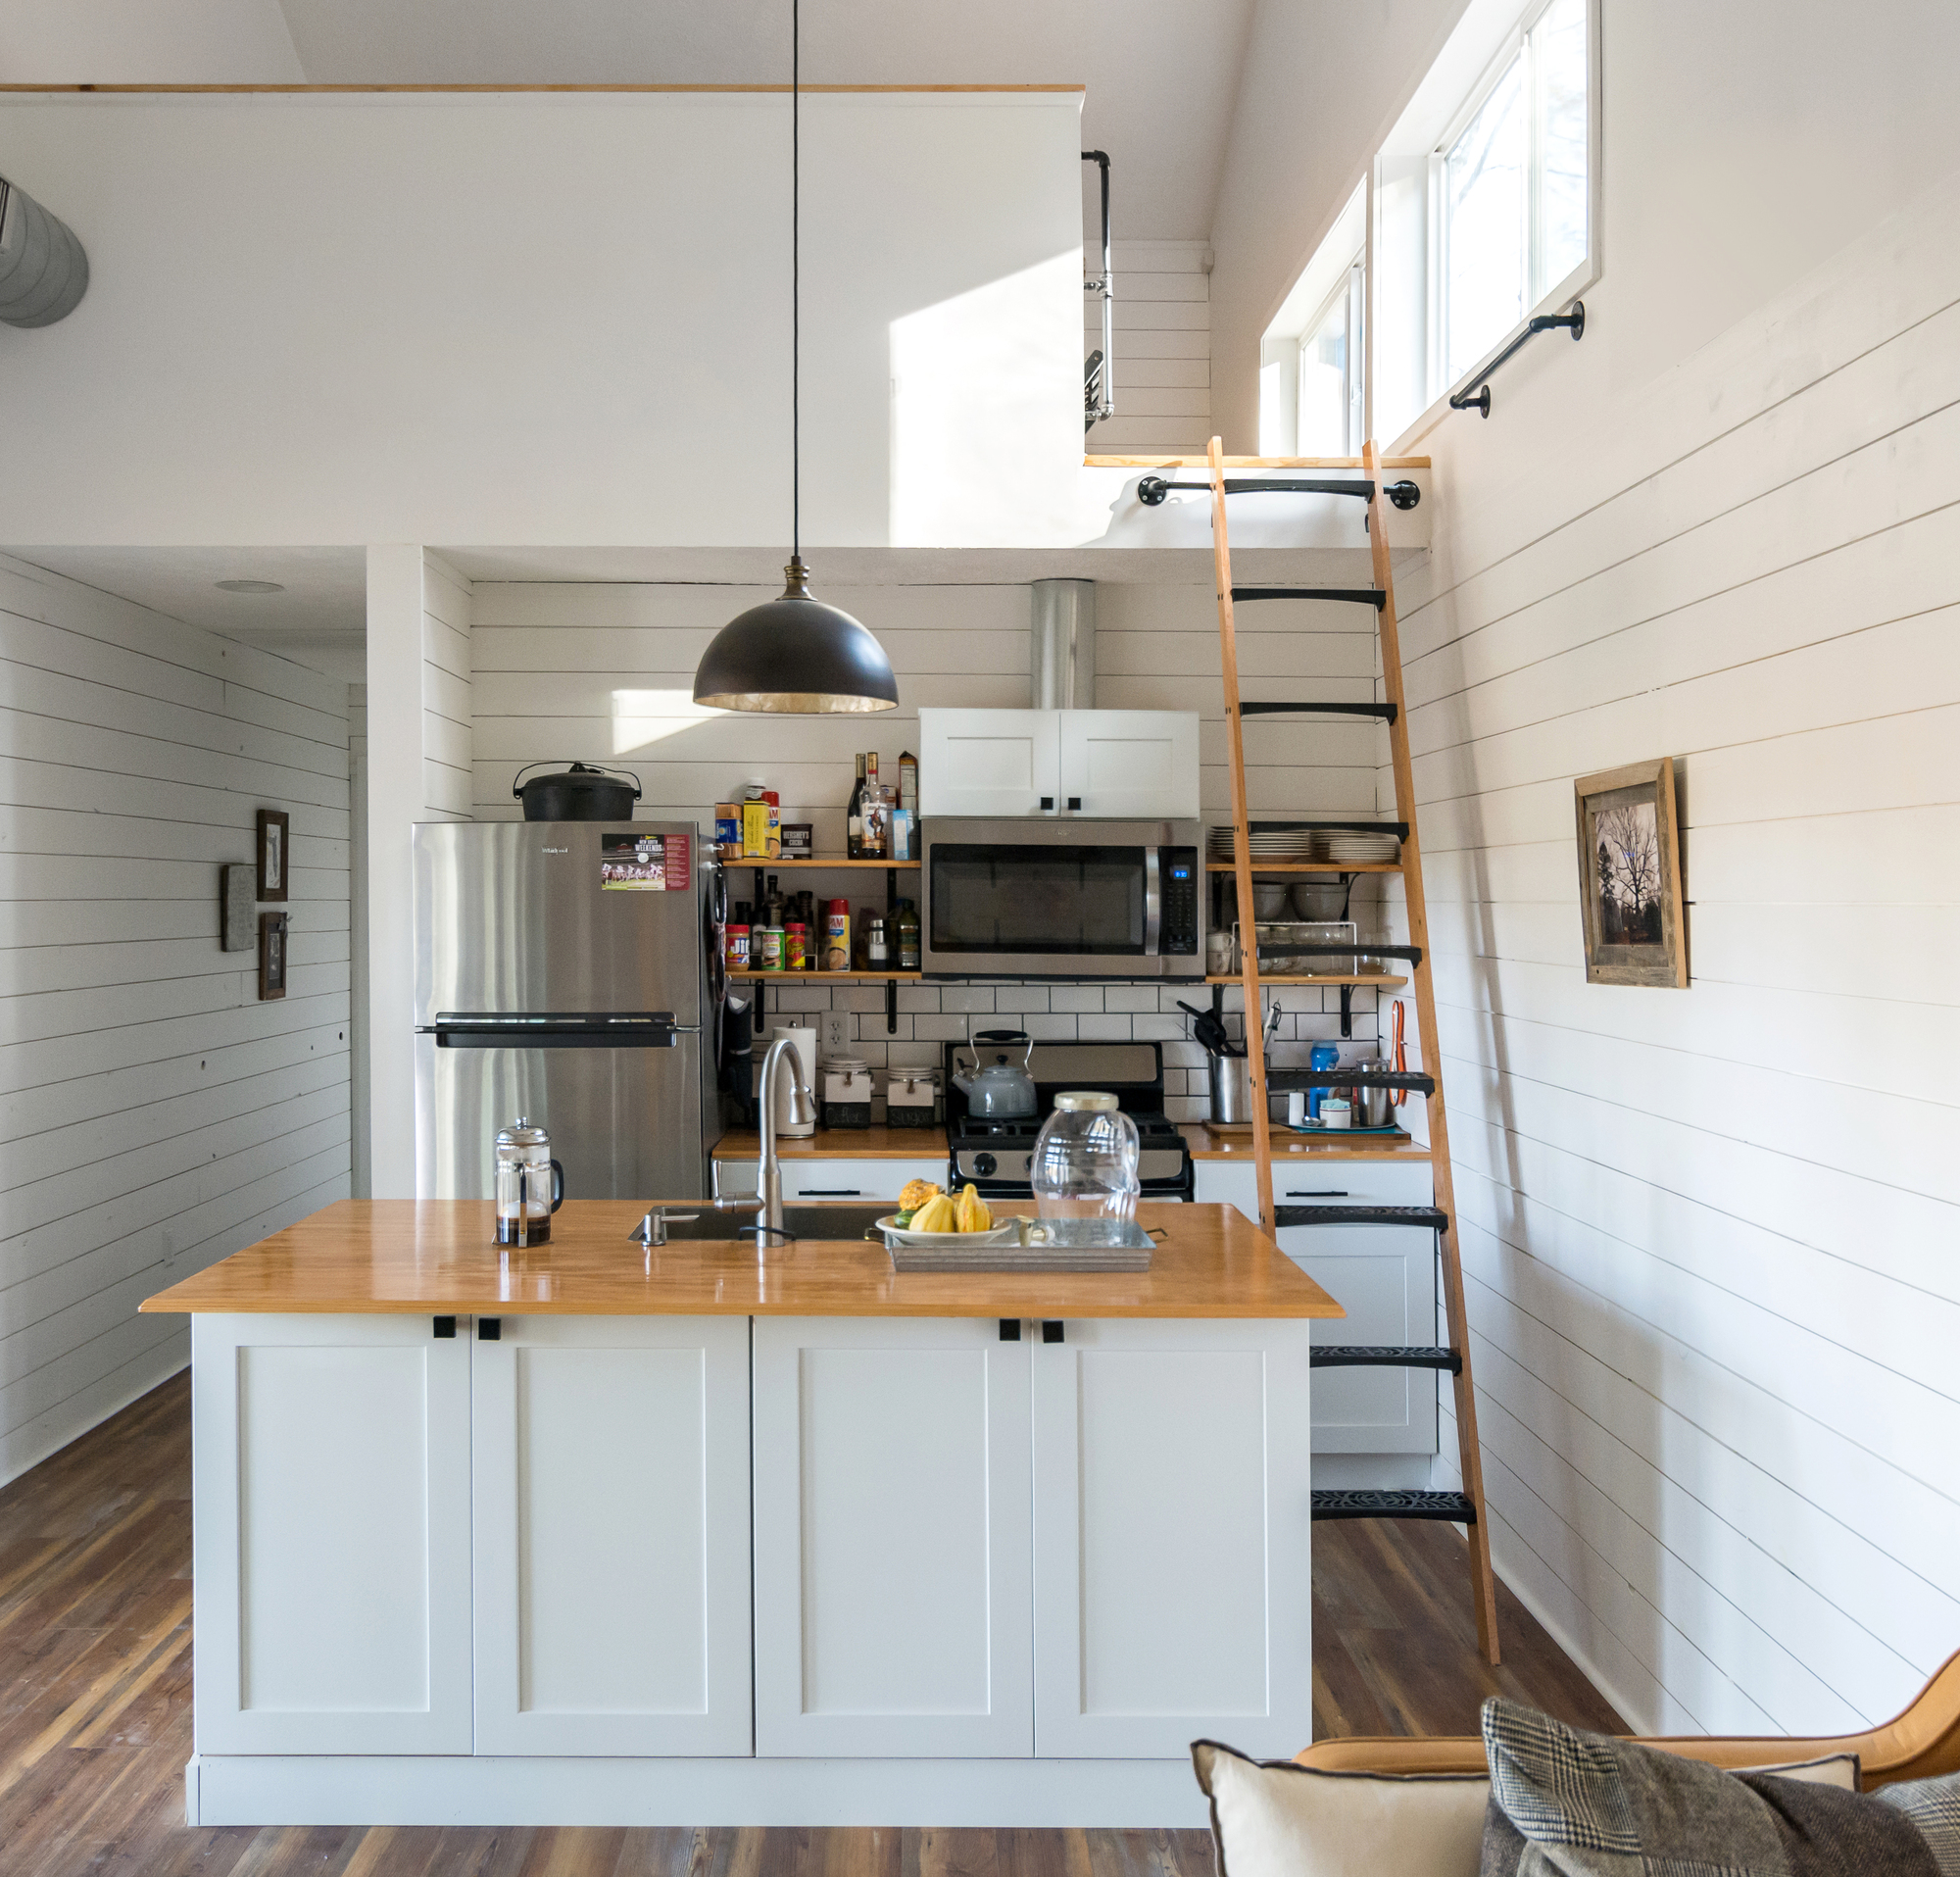 Kitchen with sleeping area above inside the tiny house